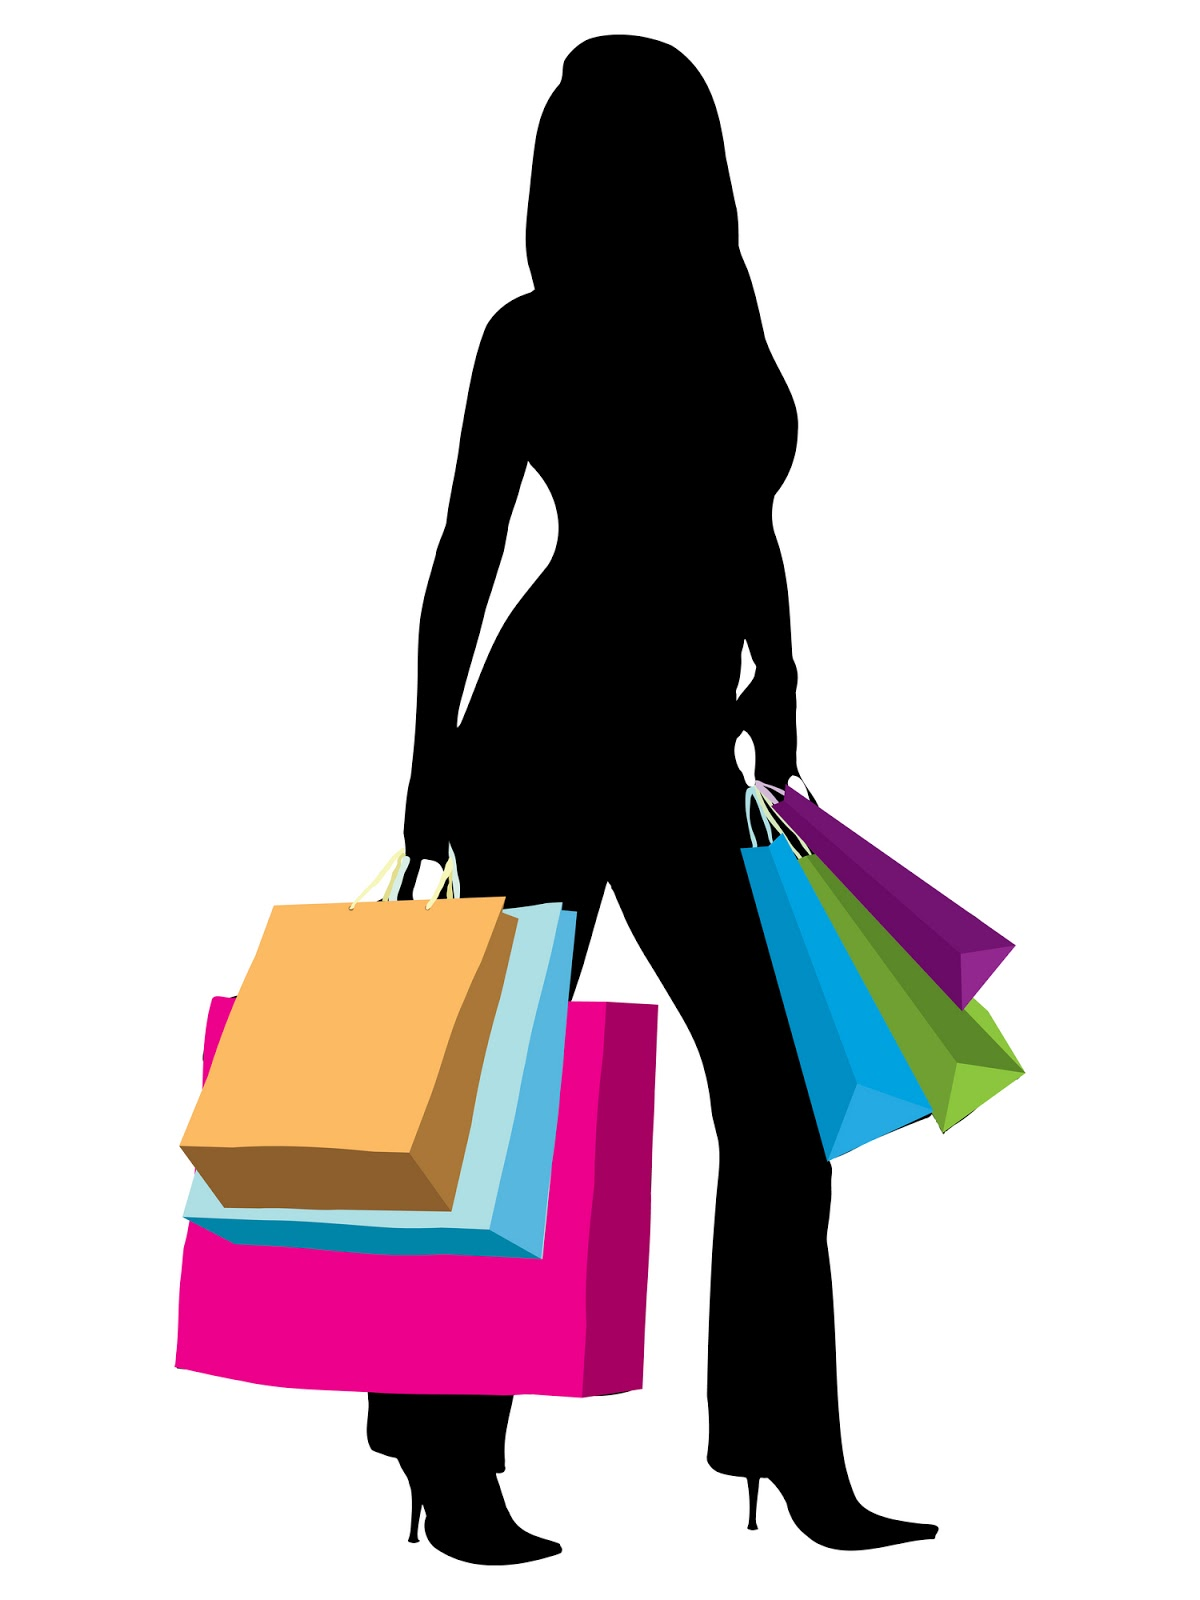 Shopping Images Stock Photos amp Vectors  Shutterstock